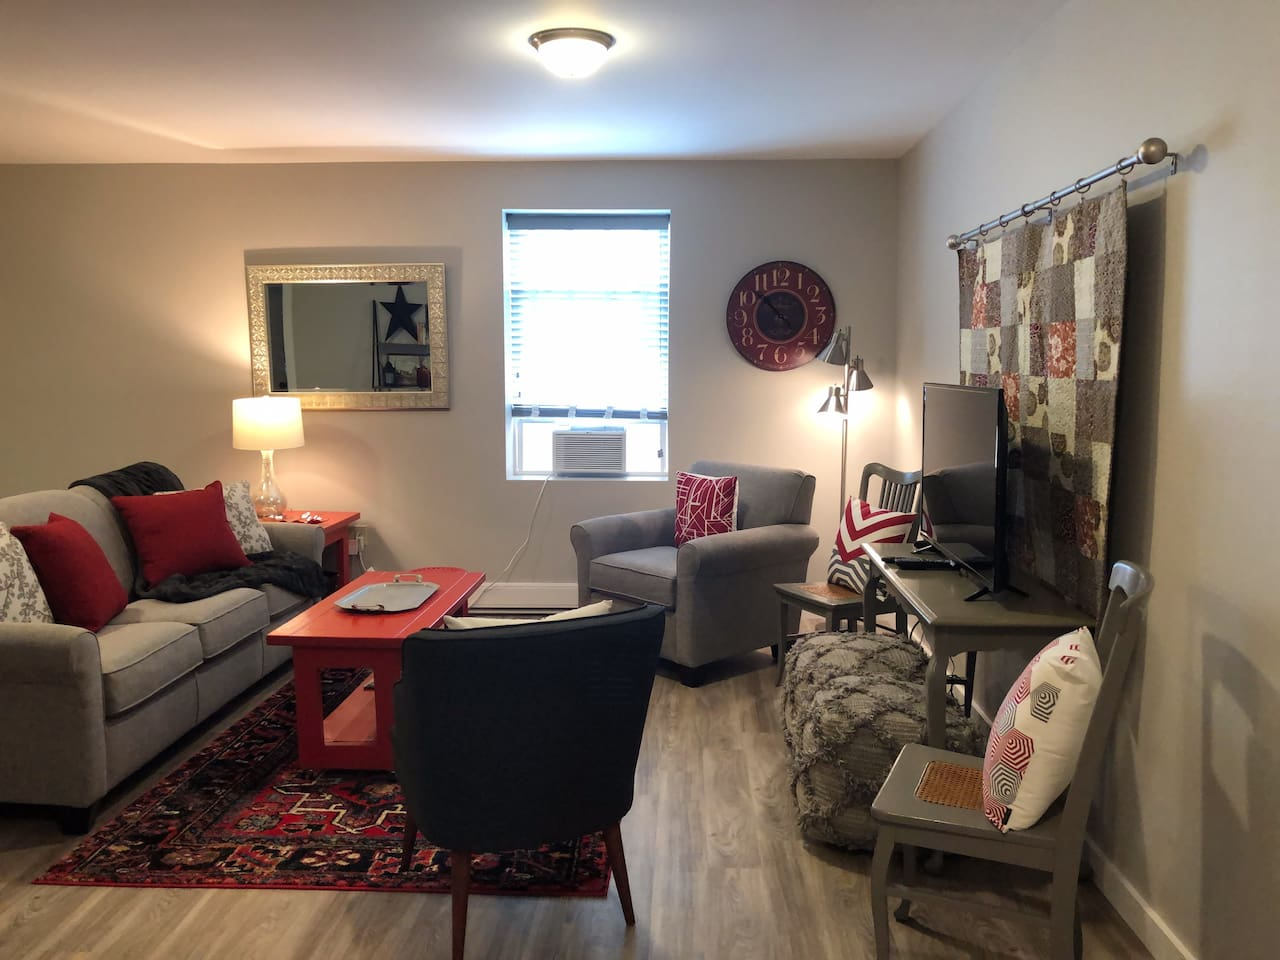 Comfortable seating in the living room, open to the kitchen and dining area.